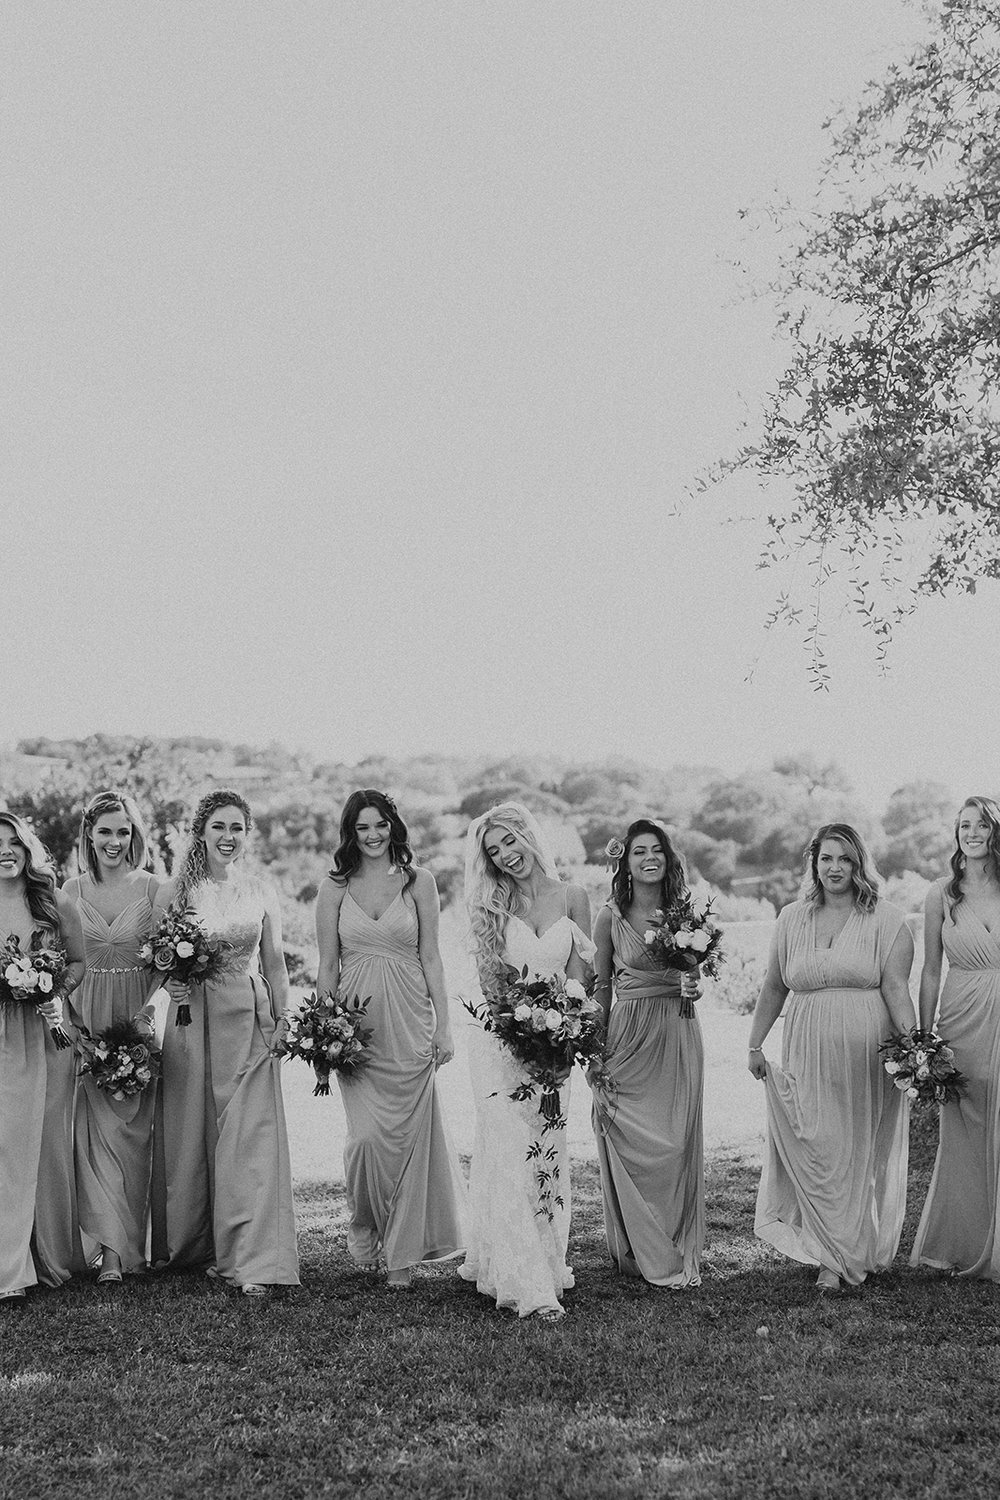 allie-tyler-vintage-villas-austin-texas-wedding-photographer-1524-2.jpg